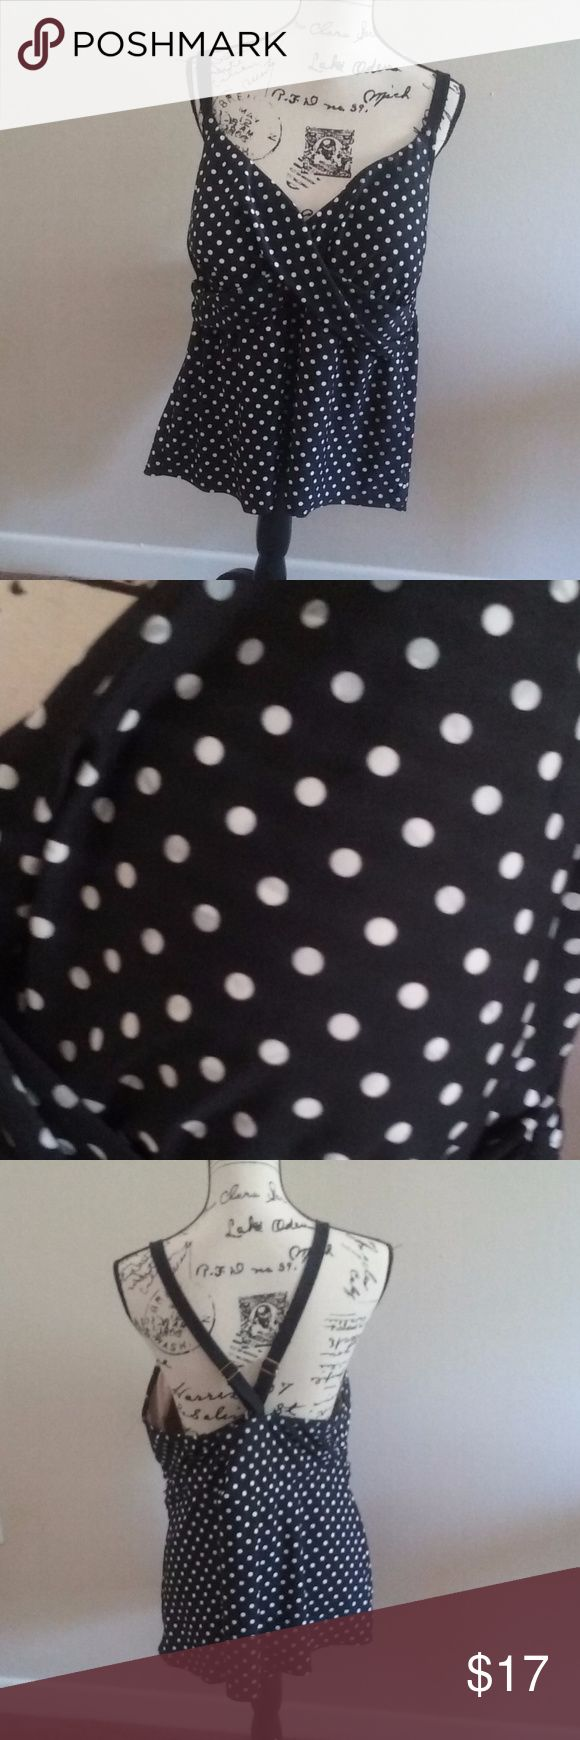 "Ava Viv Polka Dot Tankini Top Size 26W Super cute black white and gray polka dot print cross back tankini top by Ava Viv size 26W, measures approximately 15"" long from front chest area to bottom hem and 18.5"" underarm to underarm flat lay measurements. Ava & Viv Swim"